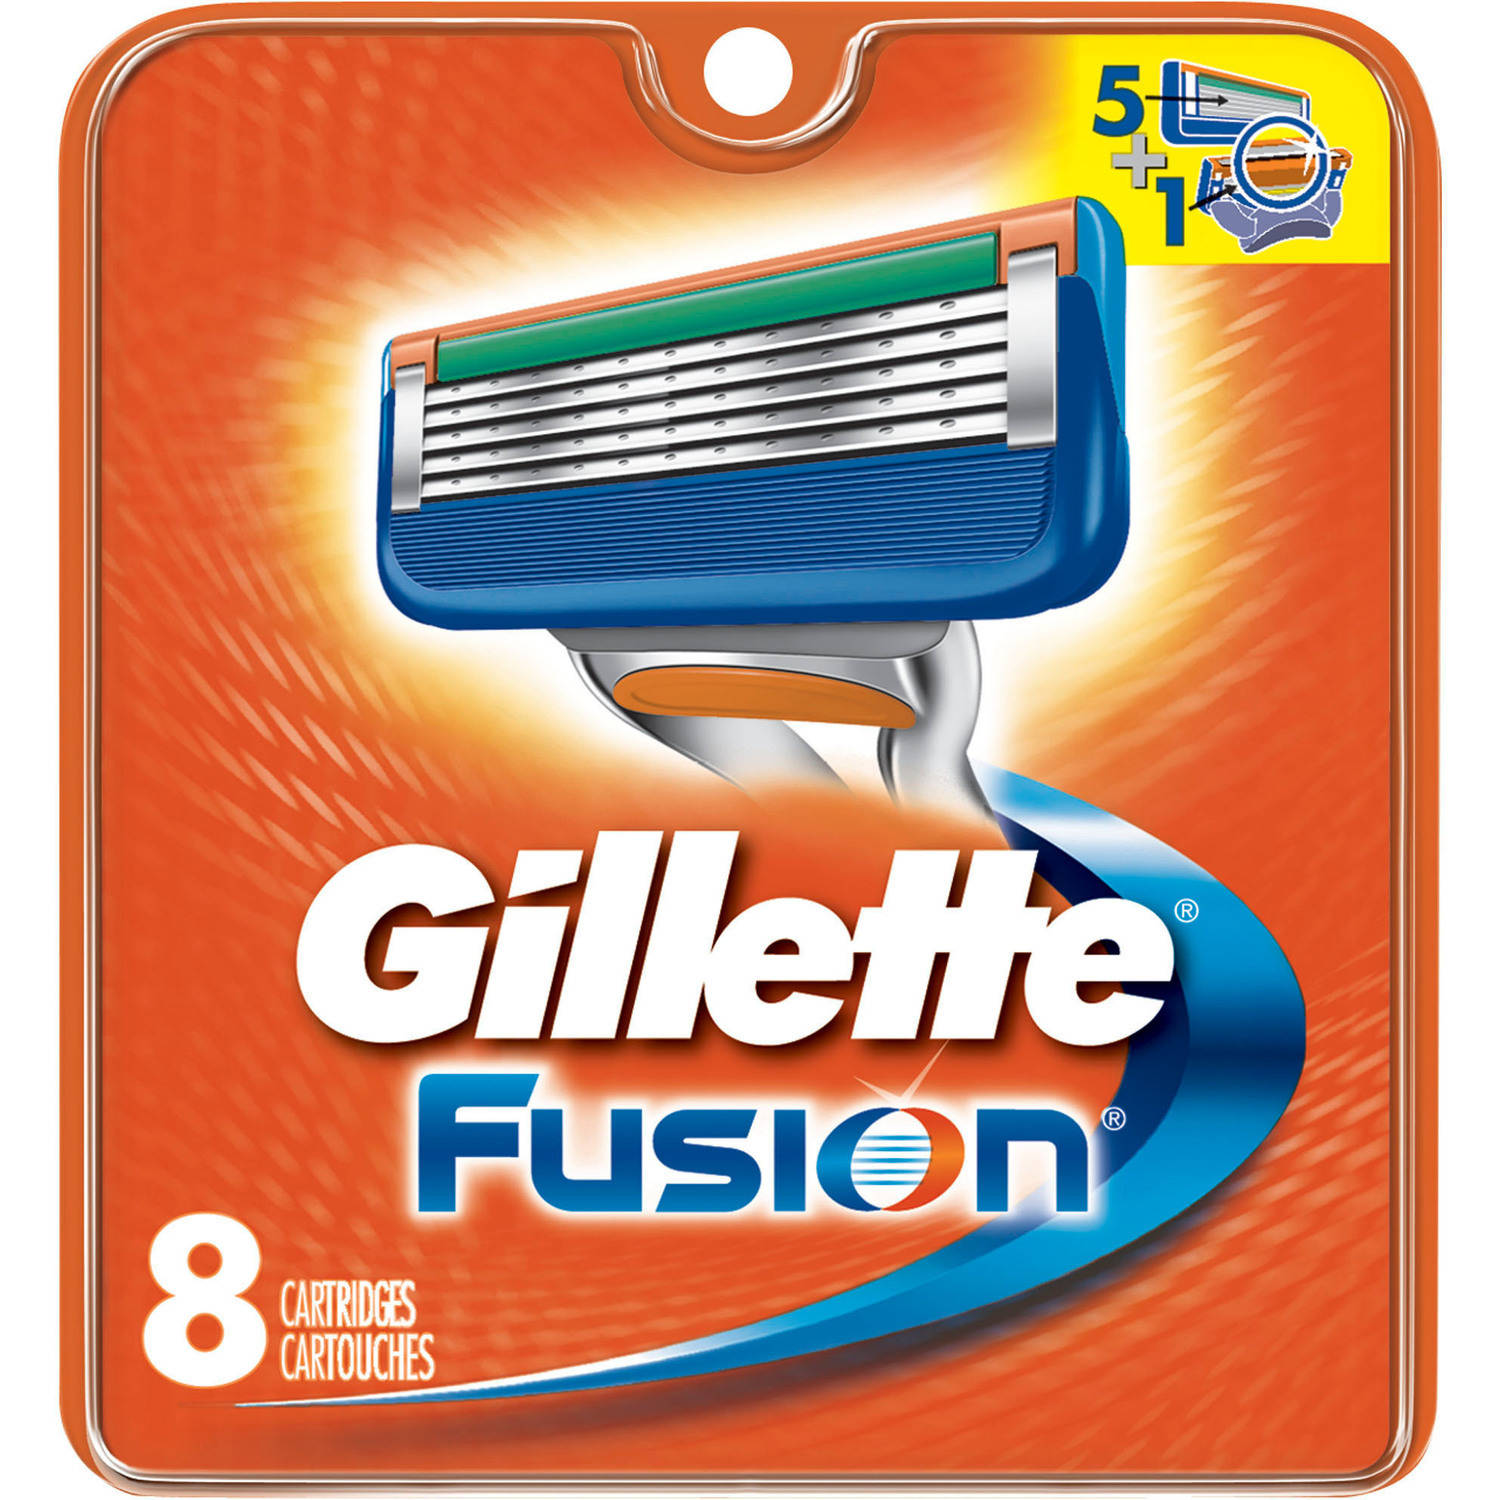 Gillette Fusion Razor Cartridge Refills, 8 count